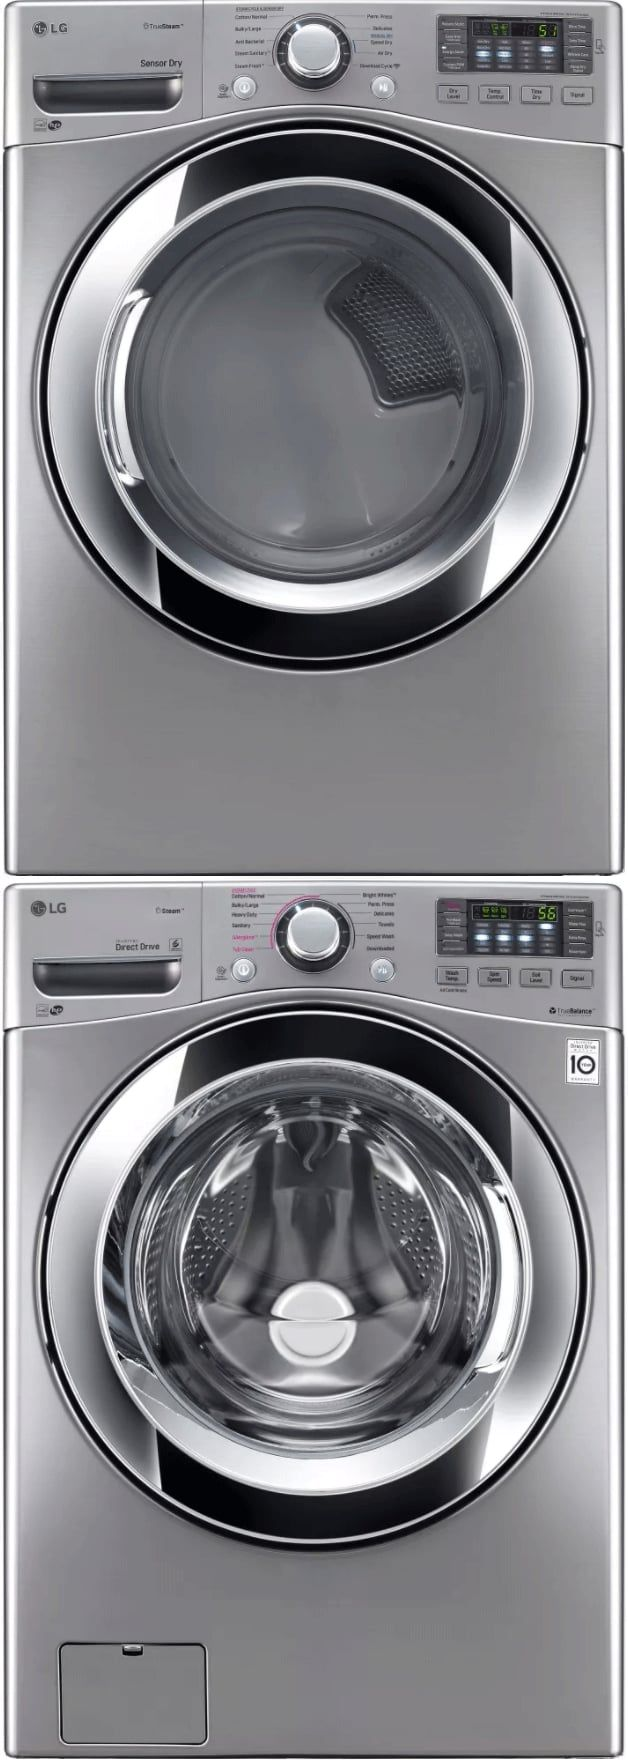 Lg Lgwadregs2 Stacked Washer Dryer Set With Front Load Washer And Electric Dryer In Graphite Steel Lg Stackable Washer Dryer Stackable Washer And Dryer